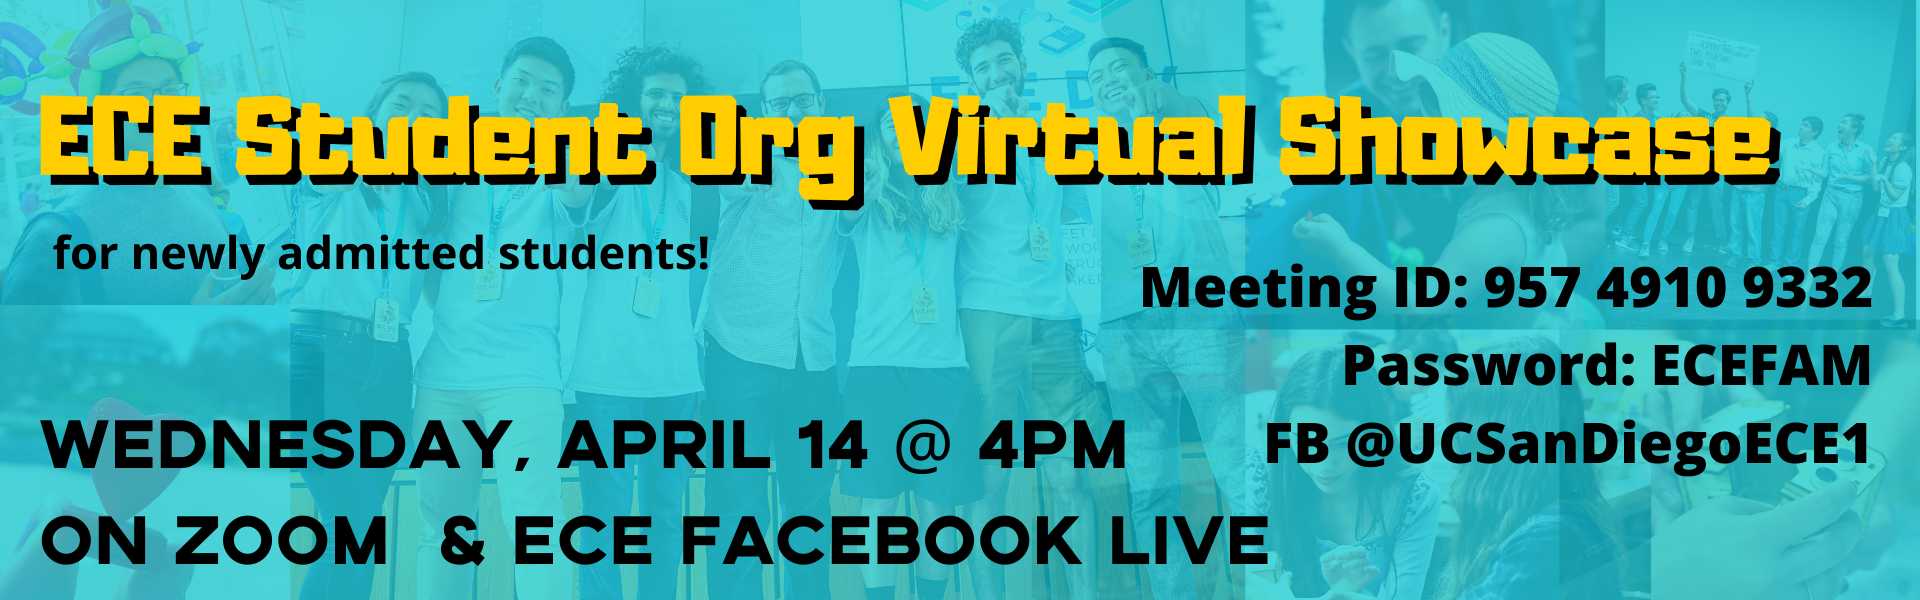 ece student org virtual showcase